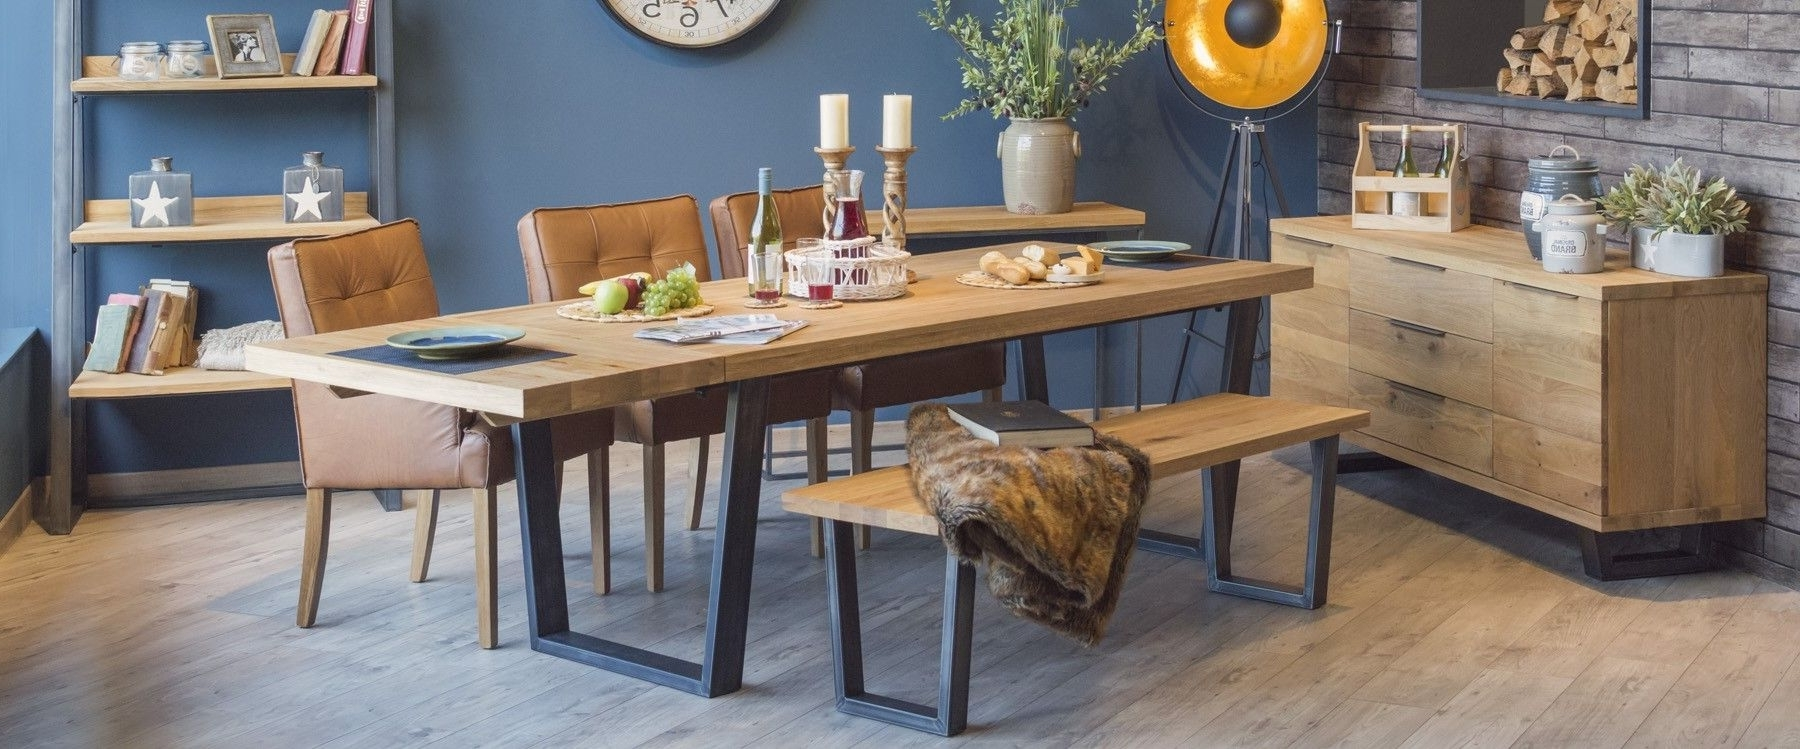 Ez Living Furniture Dublin, Cork, Kildare Within Cork Dining Tables (Gallery 13 of 25)